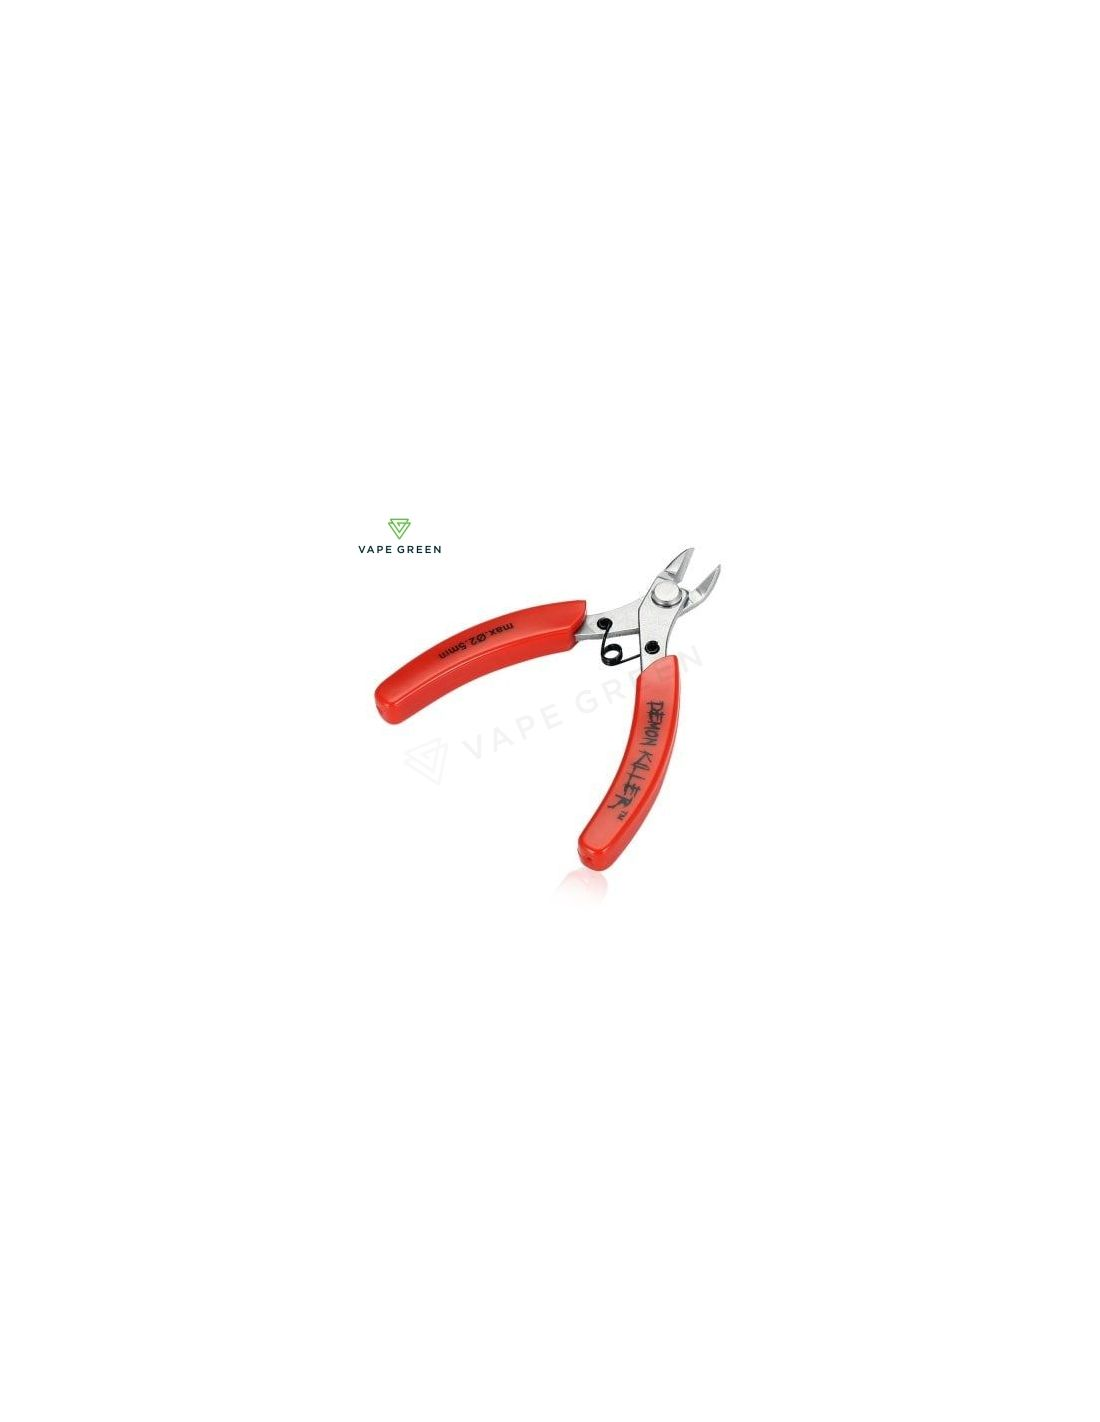 Demon Killer Cutter Pliers For Vape Wire And Coils Vapor 8 In 1